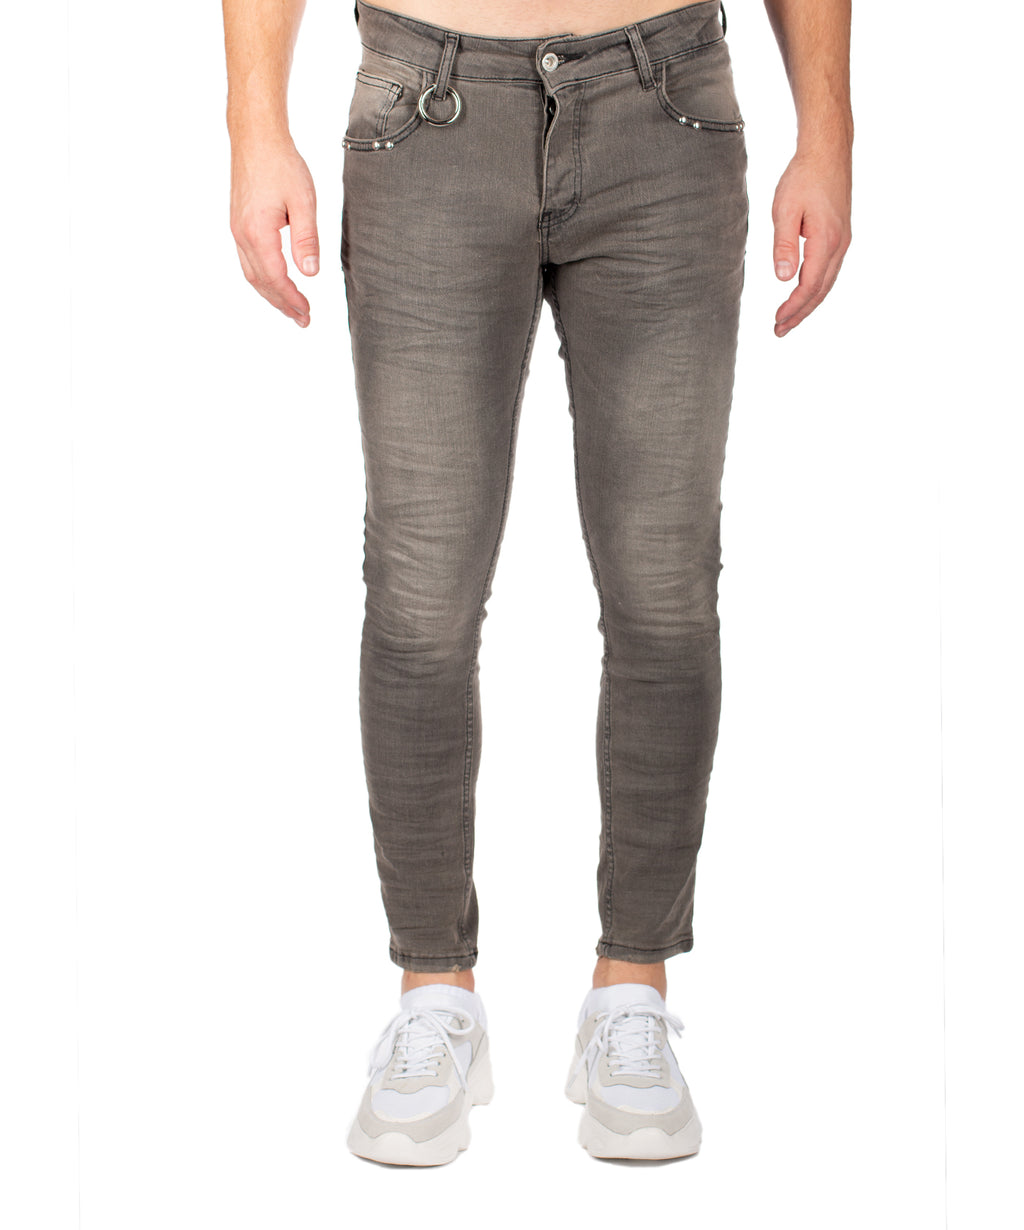 RIVETS DENIM - Vaarora